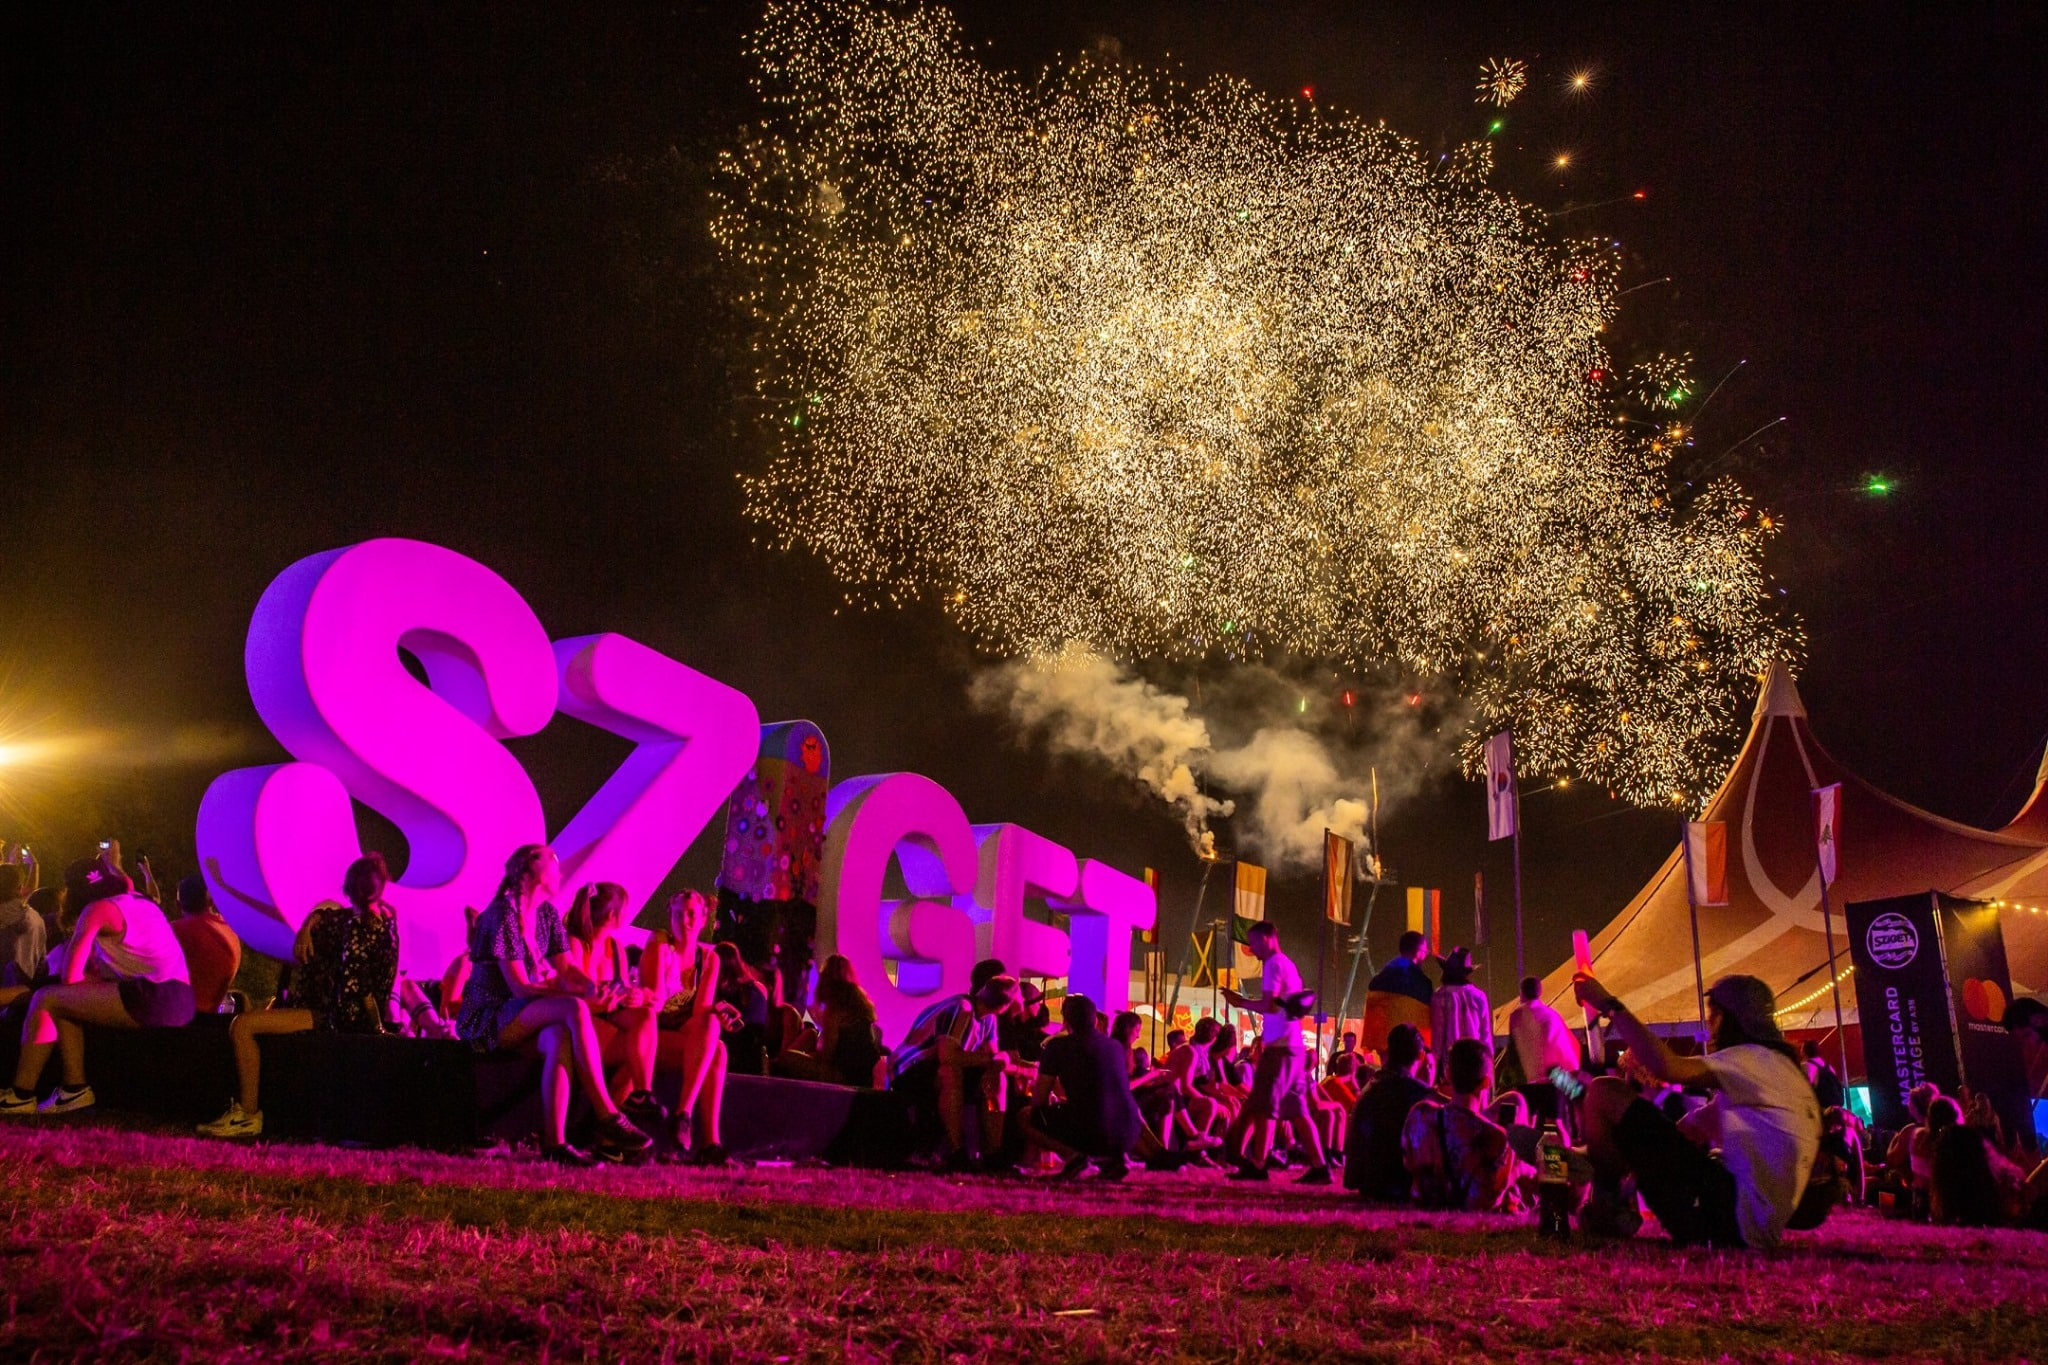 The largest catch of drugs at Sziget festival - EUR 15.4 thousand worth of drugs were found